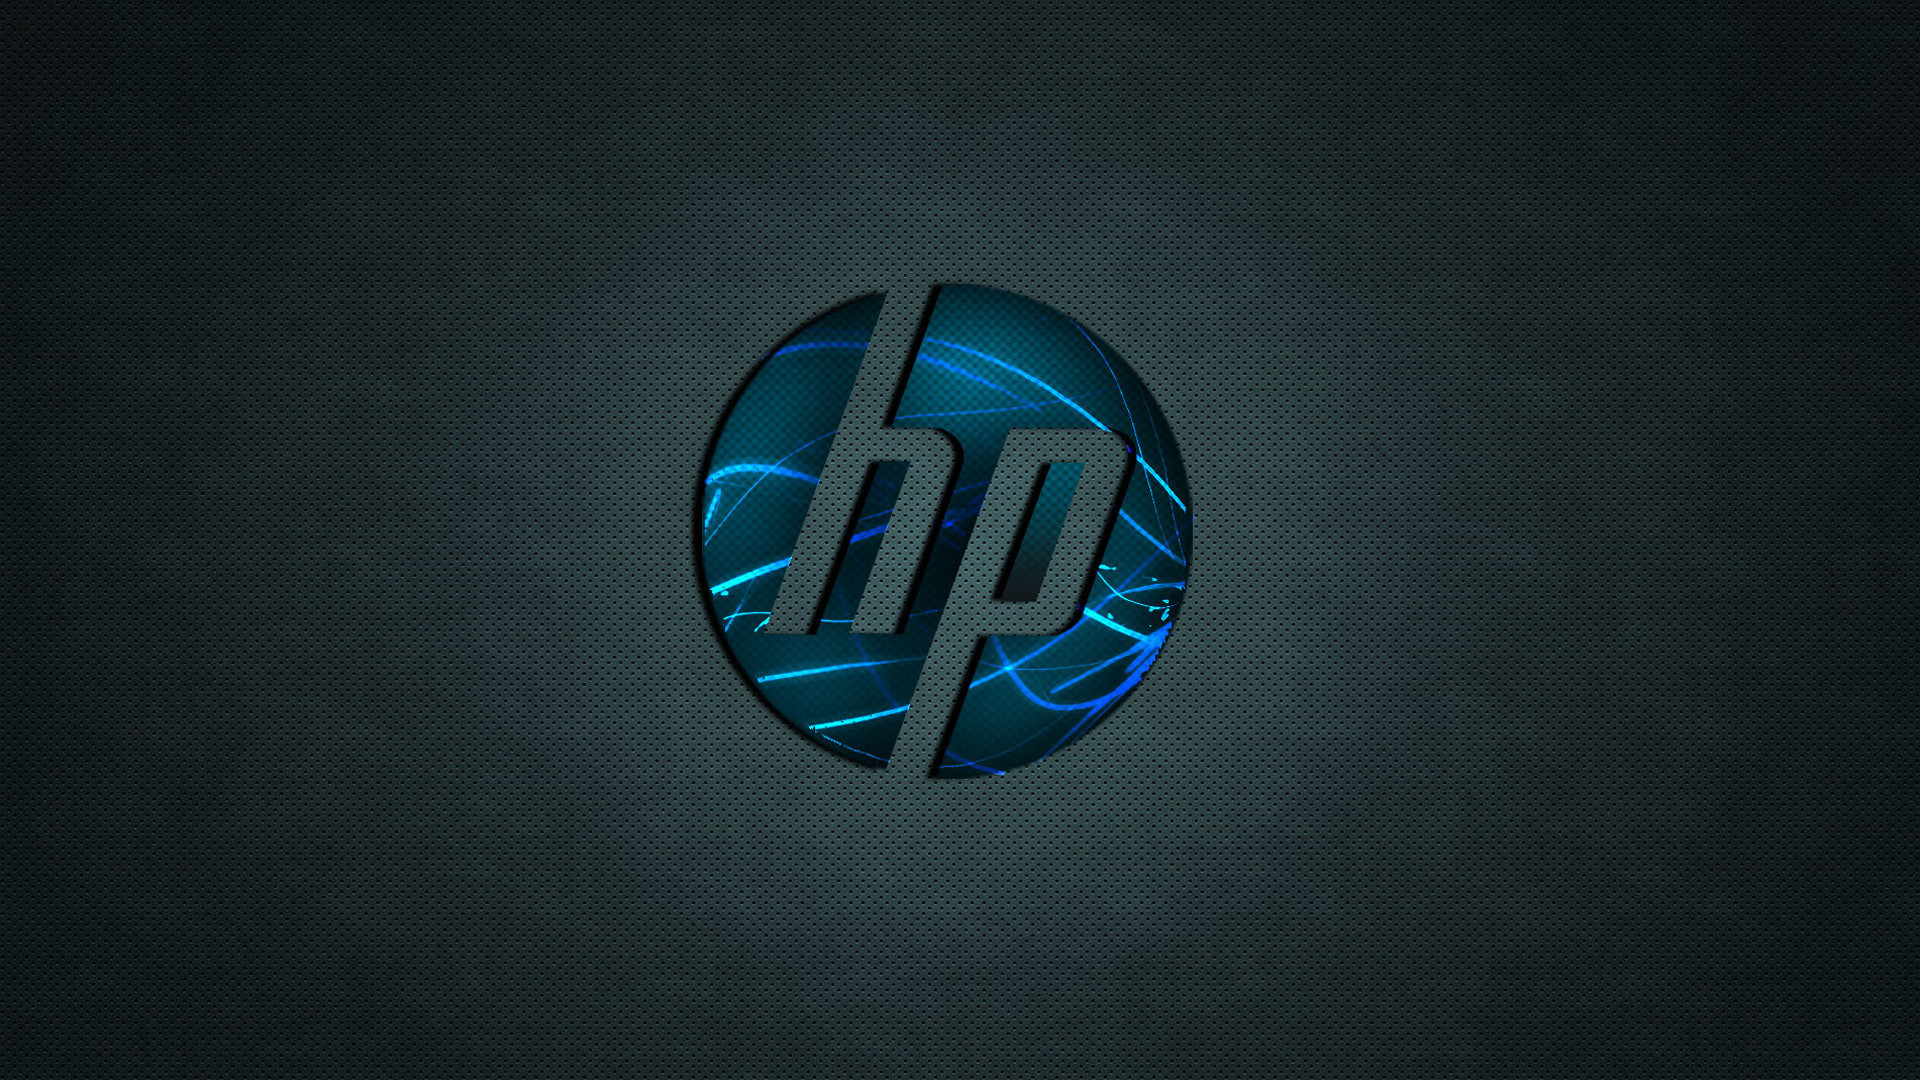 Other Wallpaper: Hp Pavilion Wallpapers Wide with Wallpaper High .